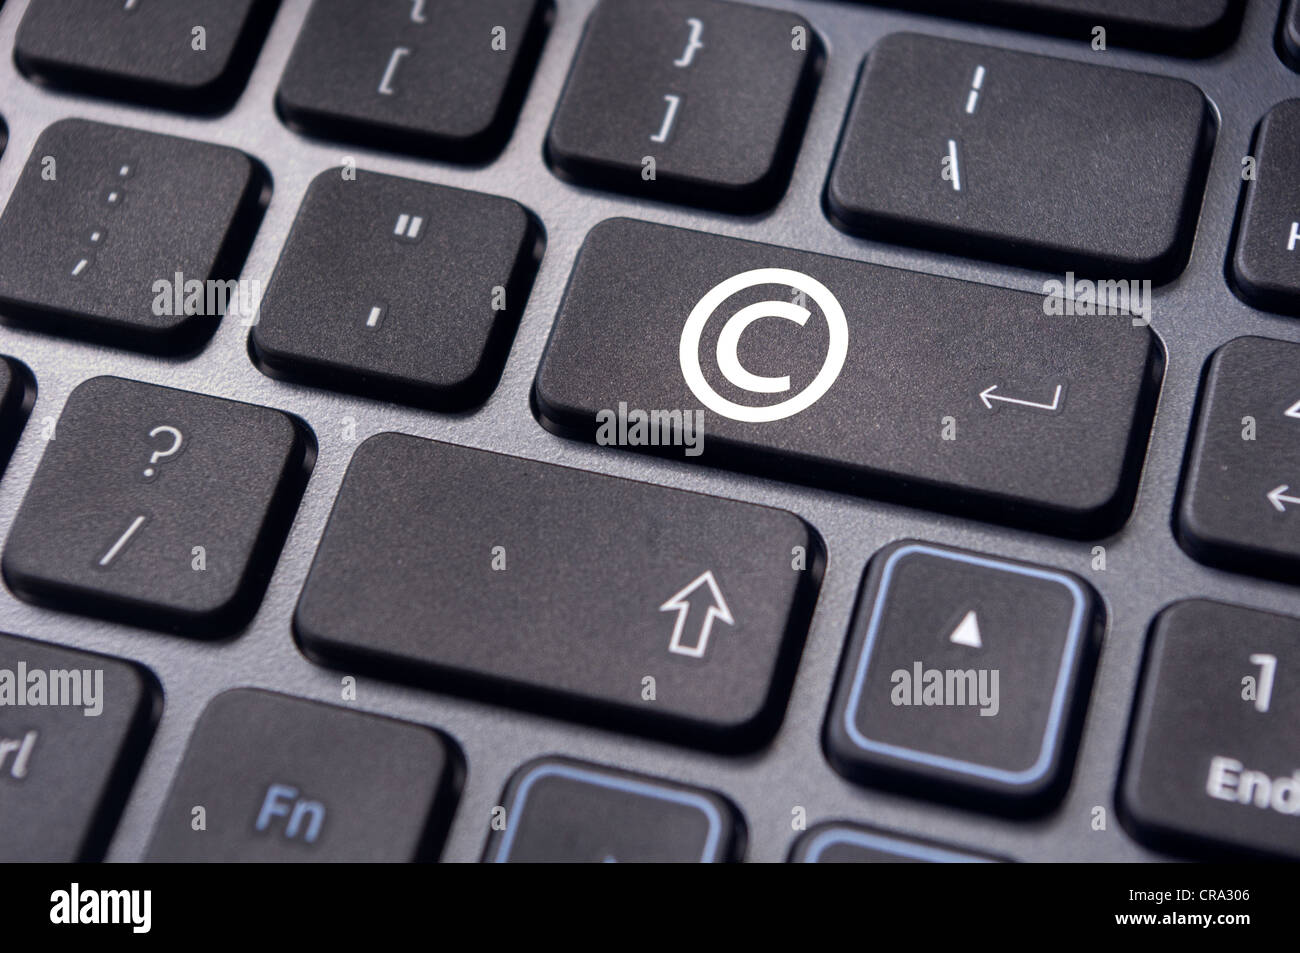 A Copyright Symbol On Keyboard To Illustrate The Concepts Stock